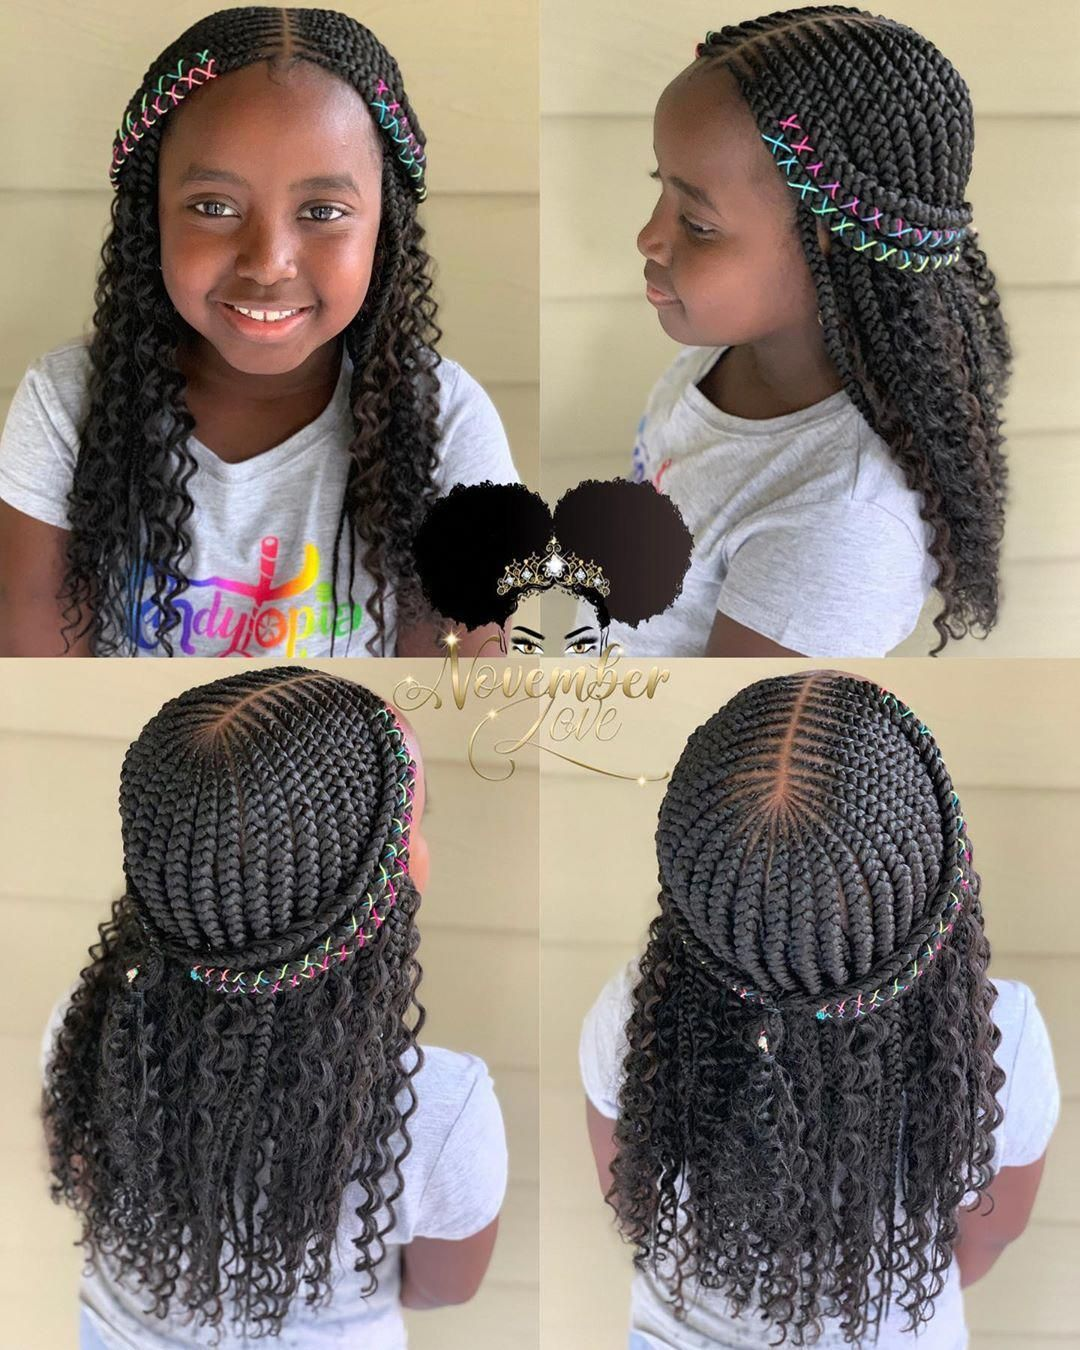 November Love On Instagram Boho Layer Braids Booking Link In Bio Apply Coupon Code At Ch In 2020 Black Kids Hairstyles Lil Girl Hairstyles Kids Braided Hairstyles